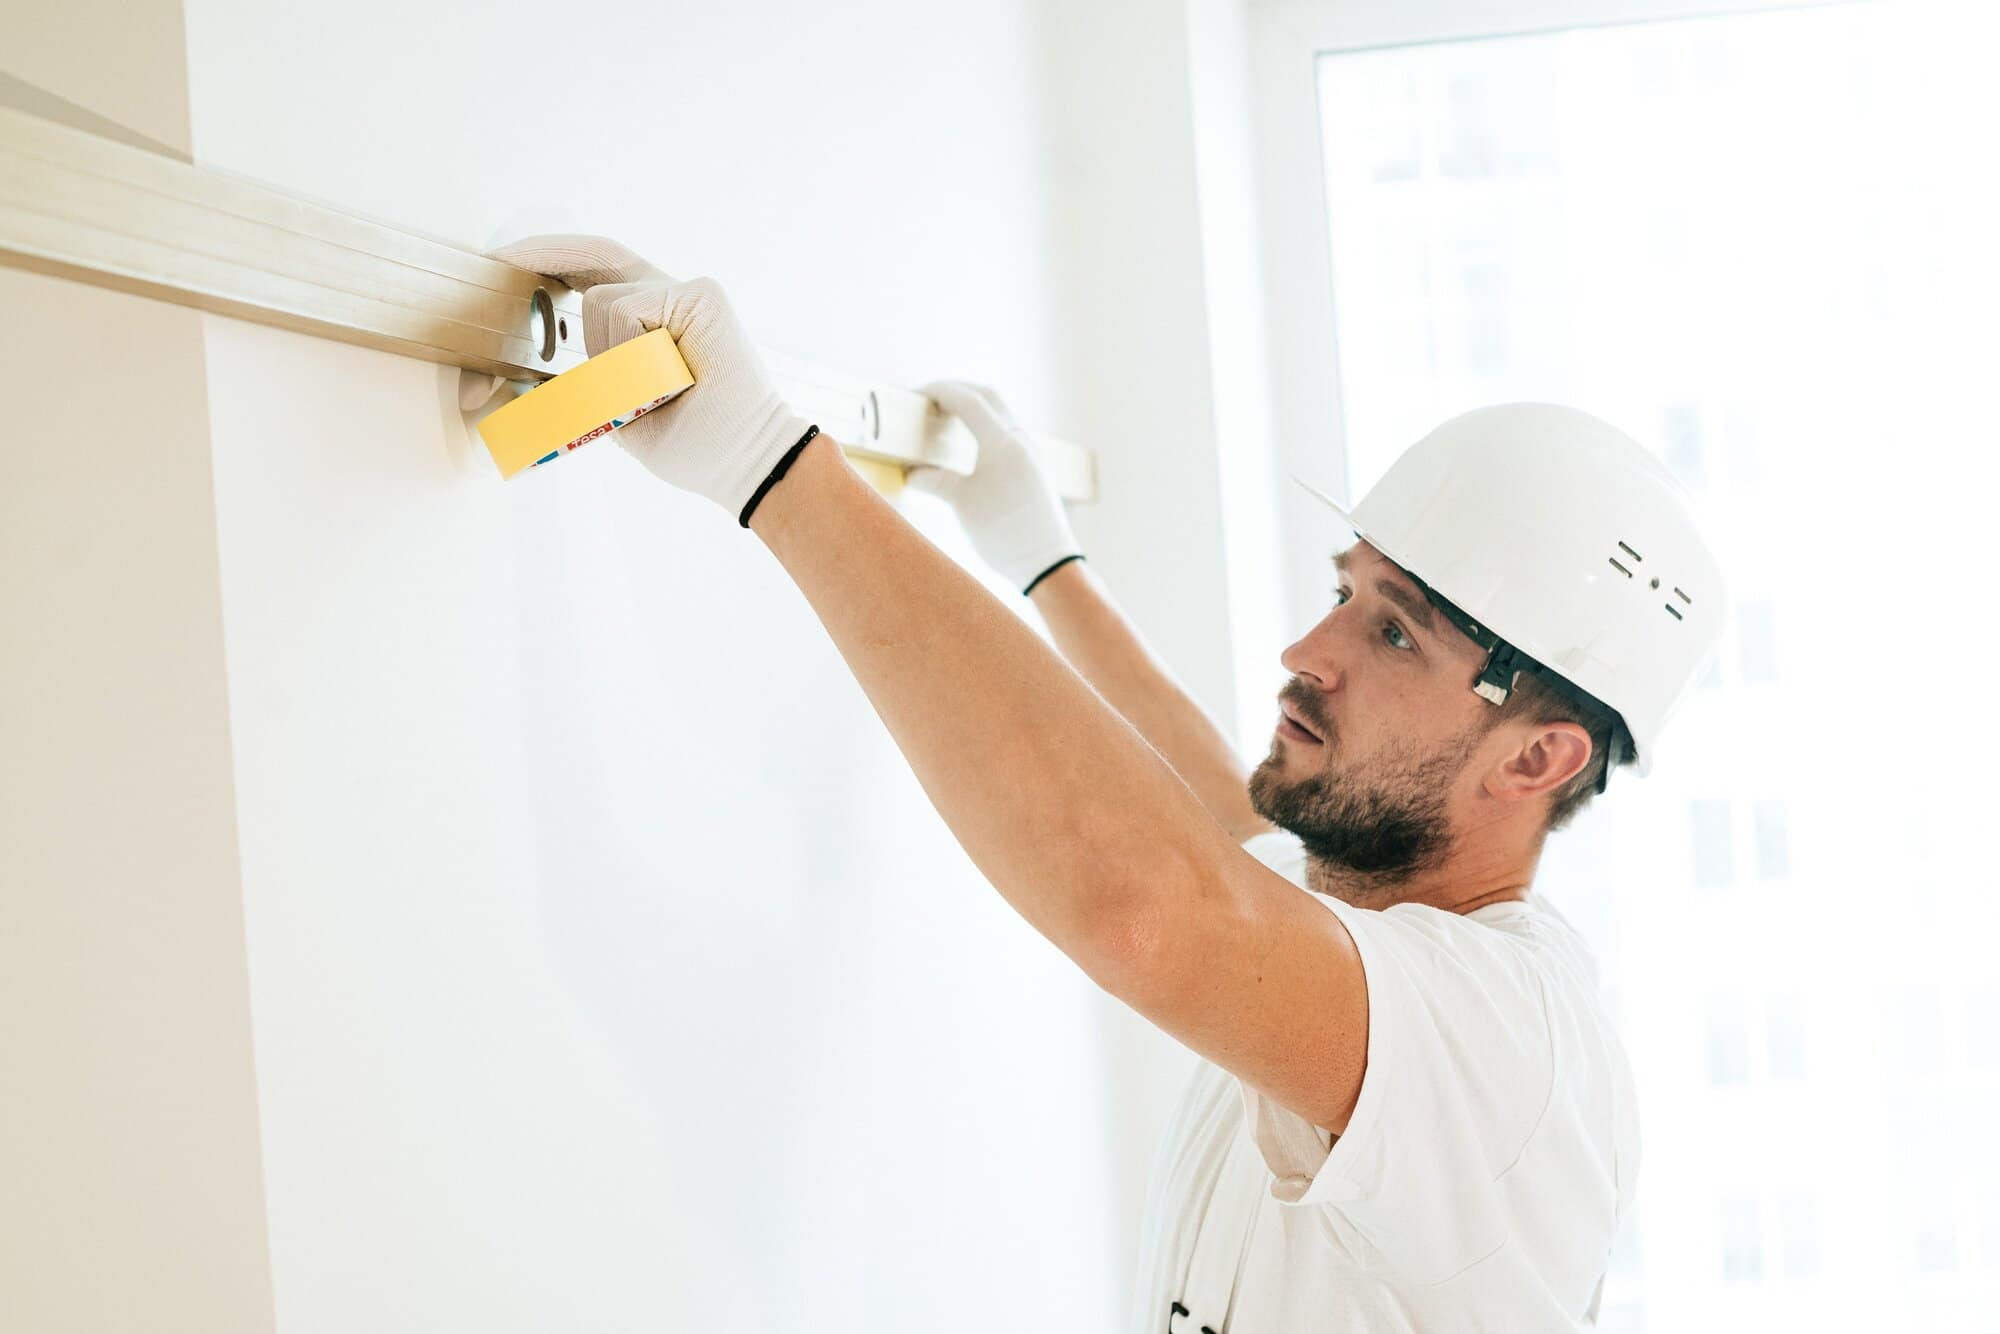 Key Questions to Ask Before Hiring Remodeling Contractors